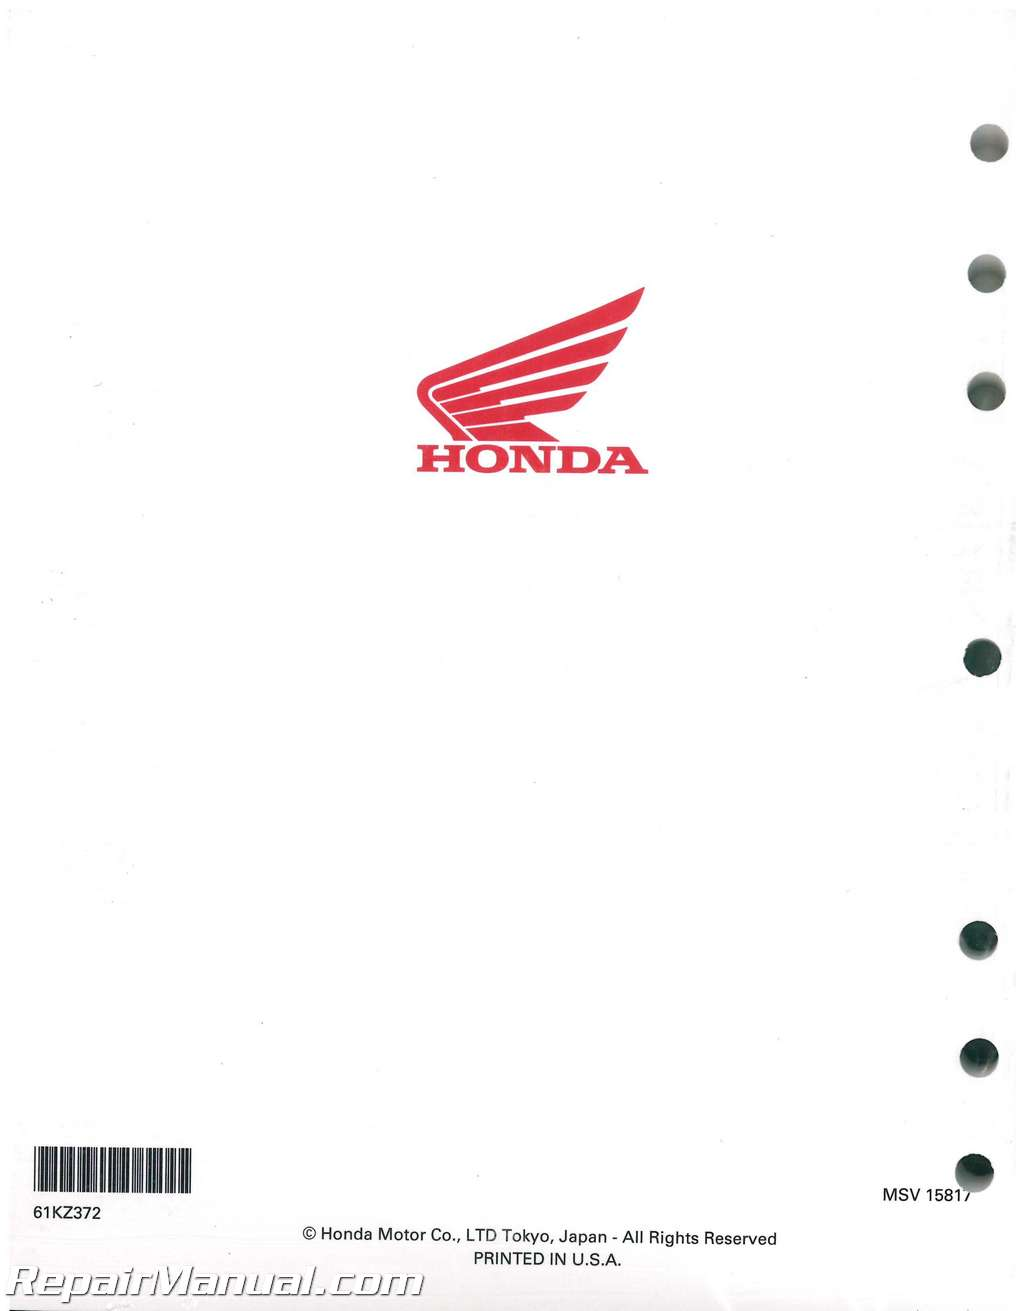 2002-2004 Honda CR250R Two Stroke Motorcycle Service Manual